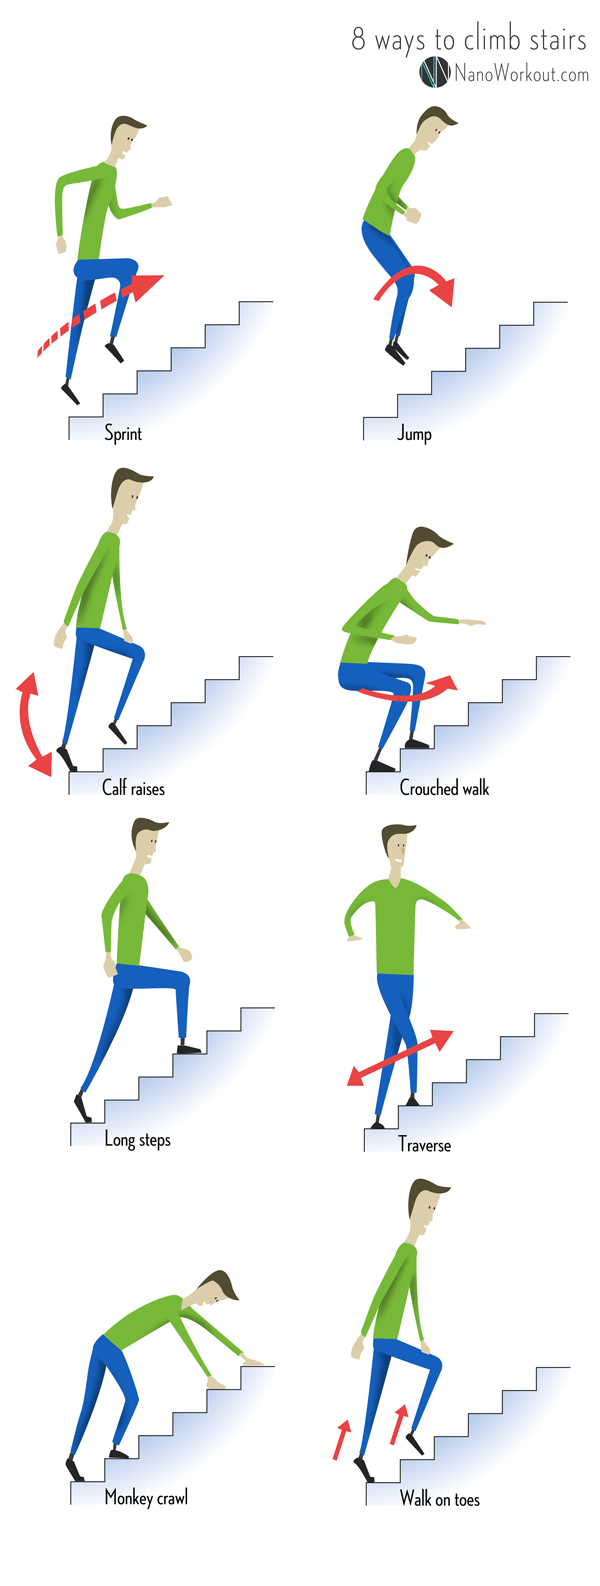 8 ways to climb stairs